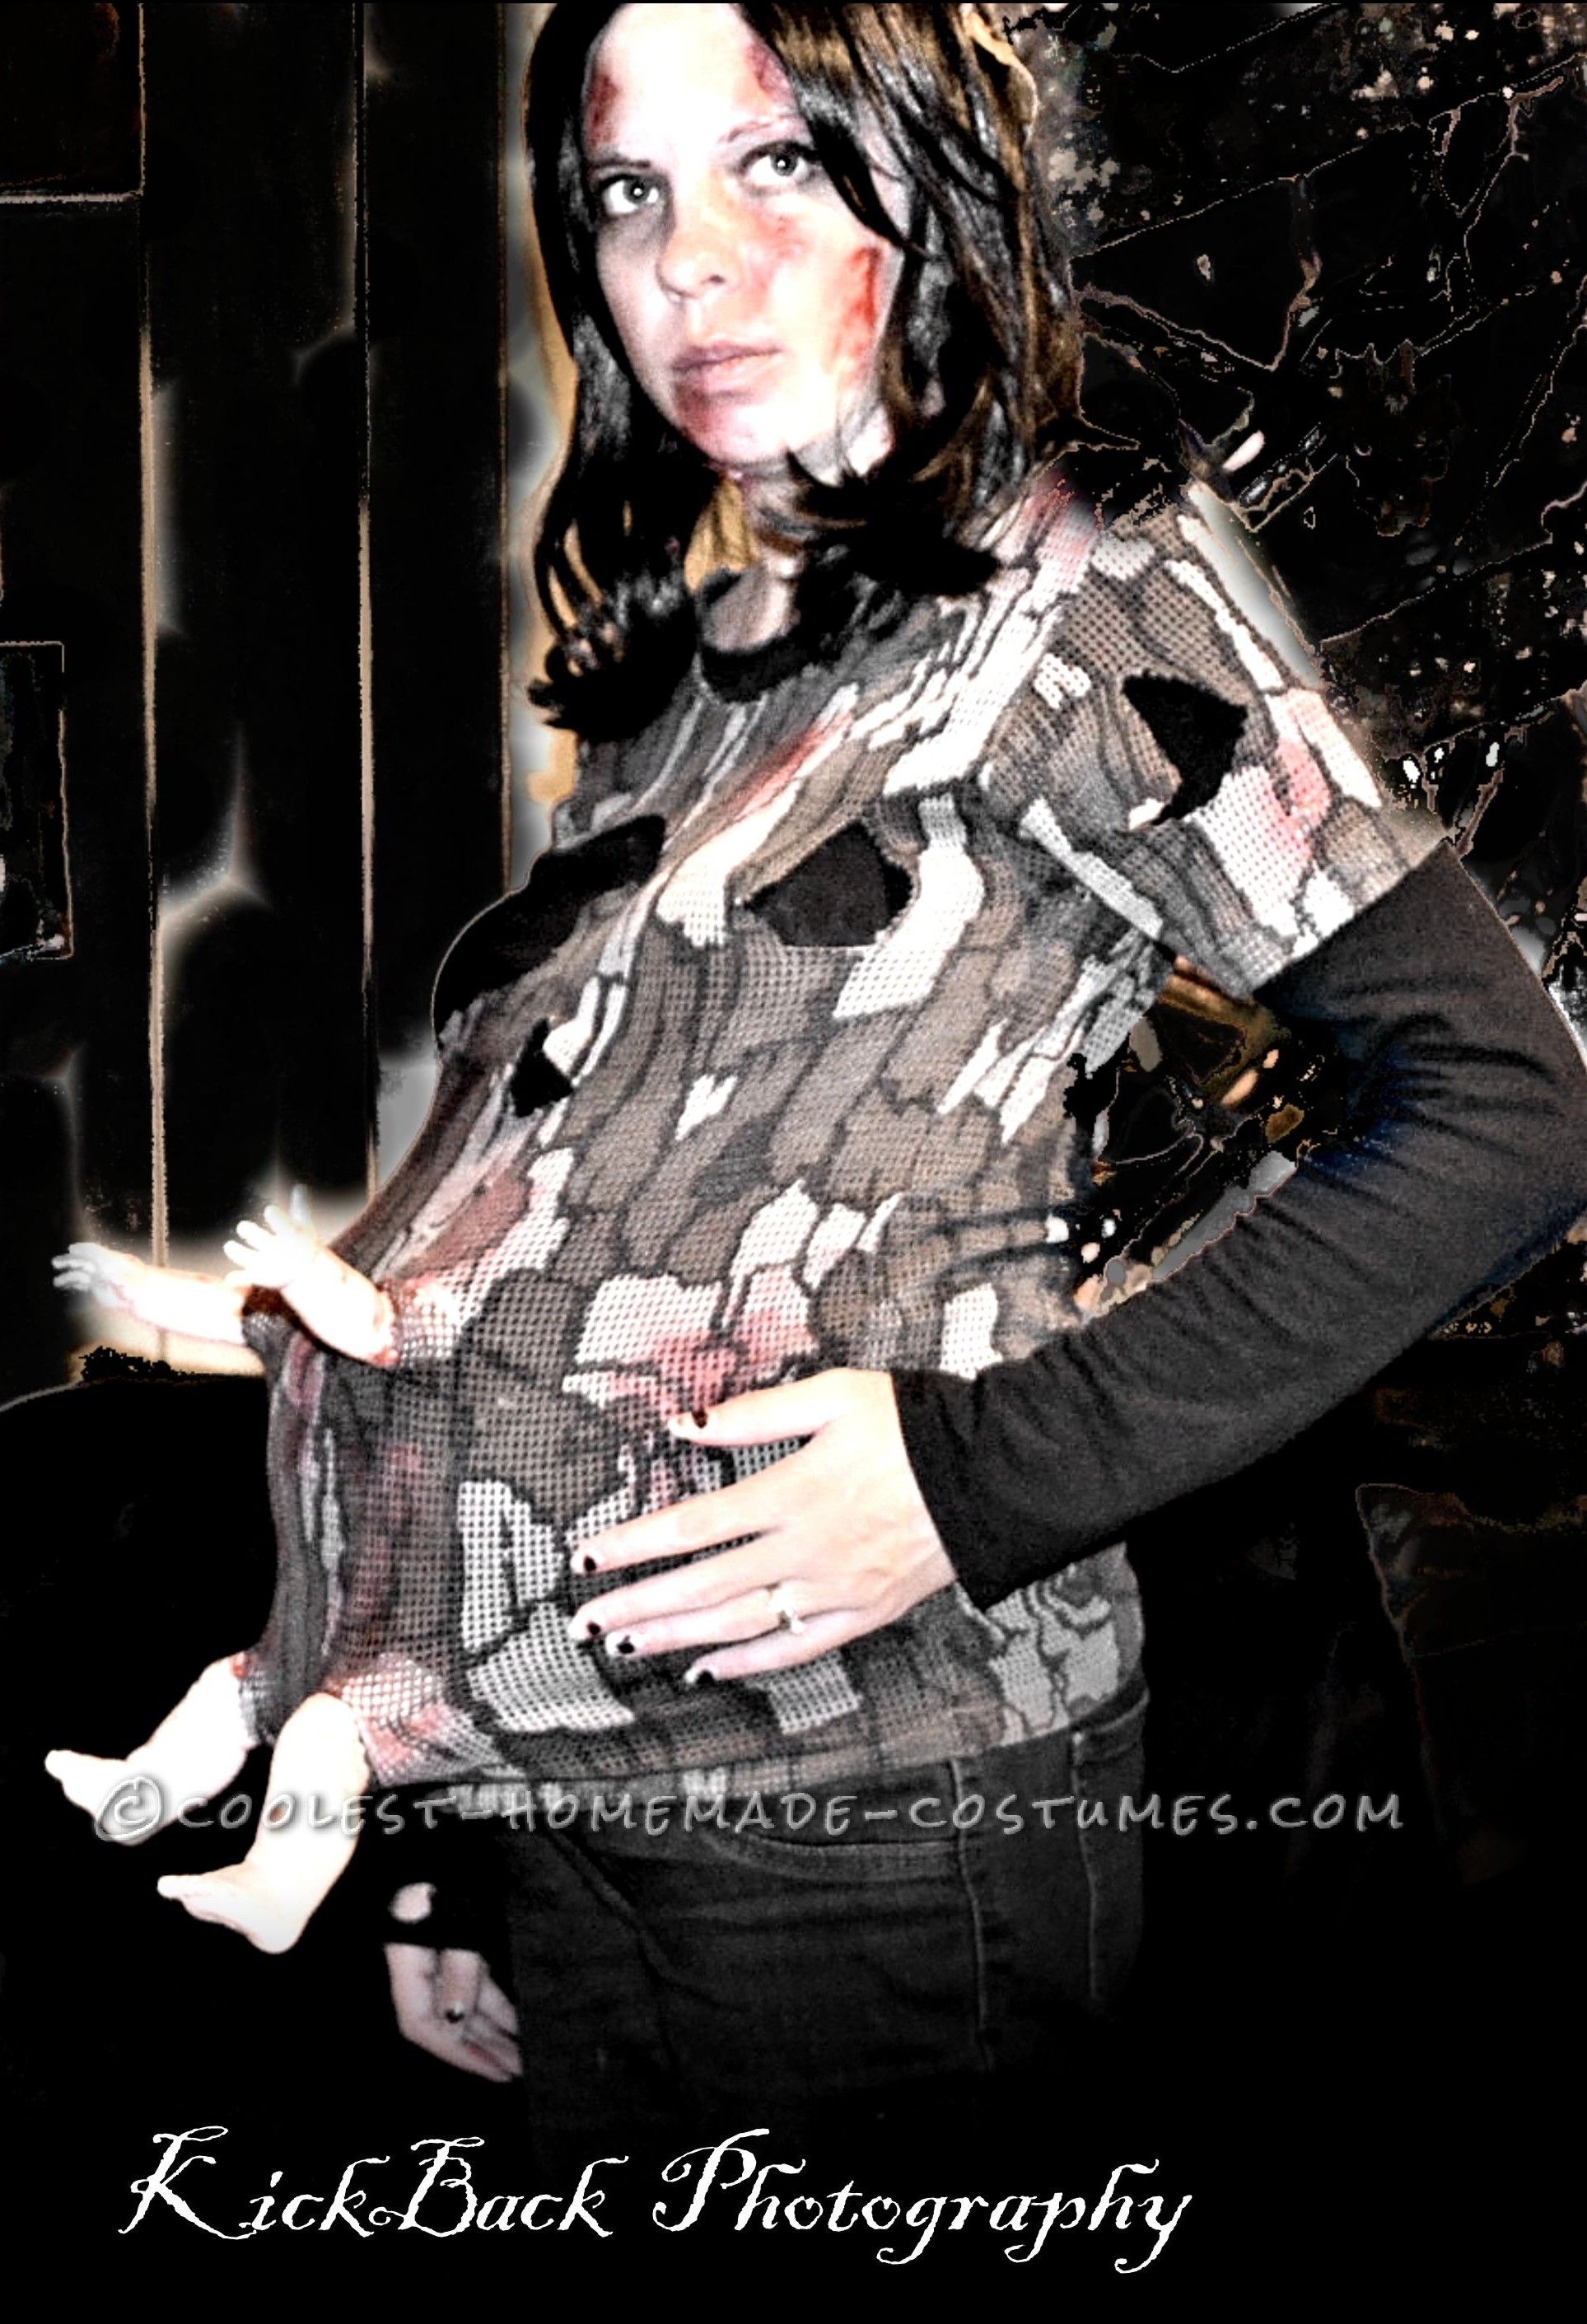 d6804a20ee328 Cool Pregnant Zombie Costume... Coolest Homemade Costume Contest